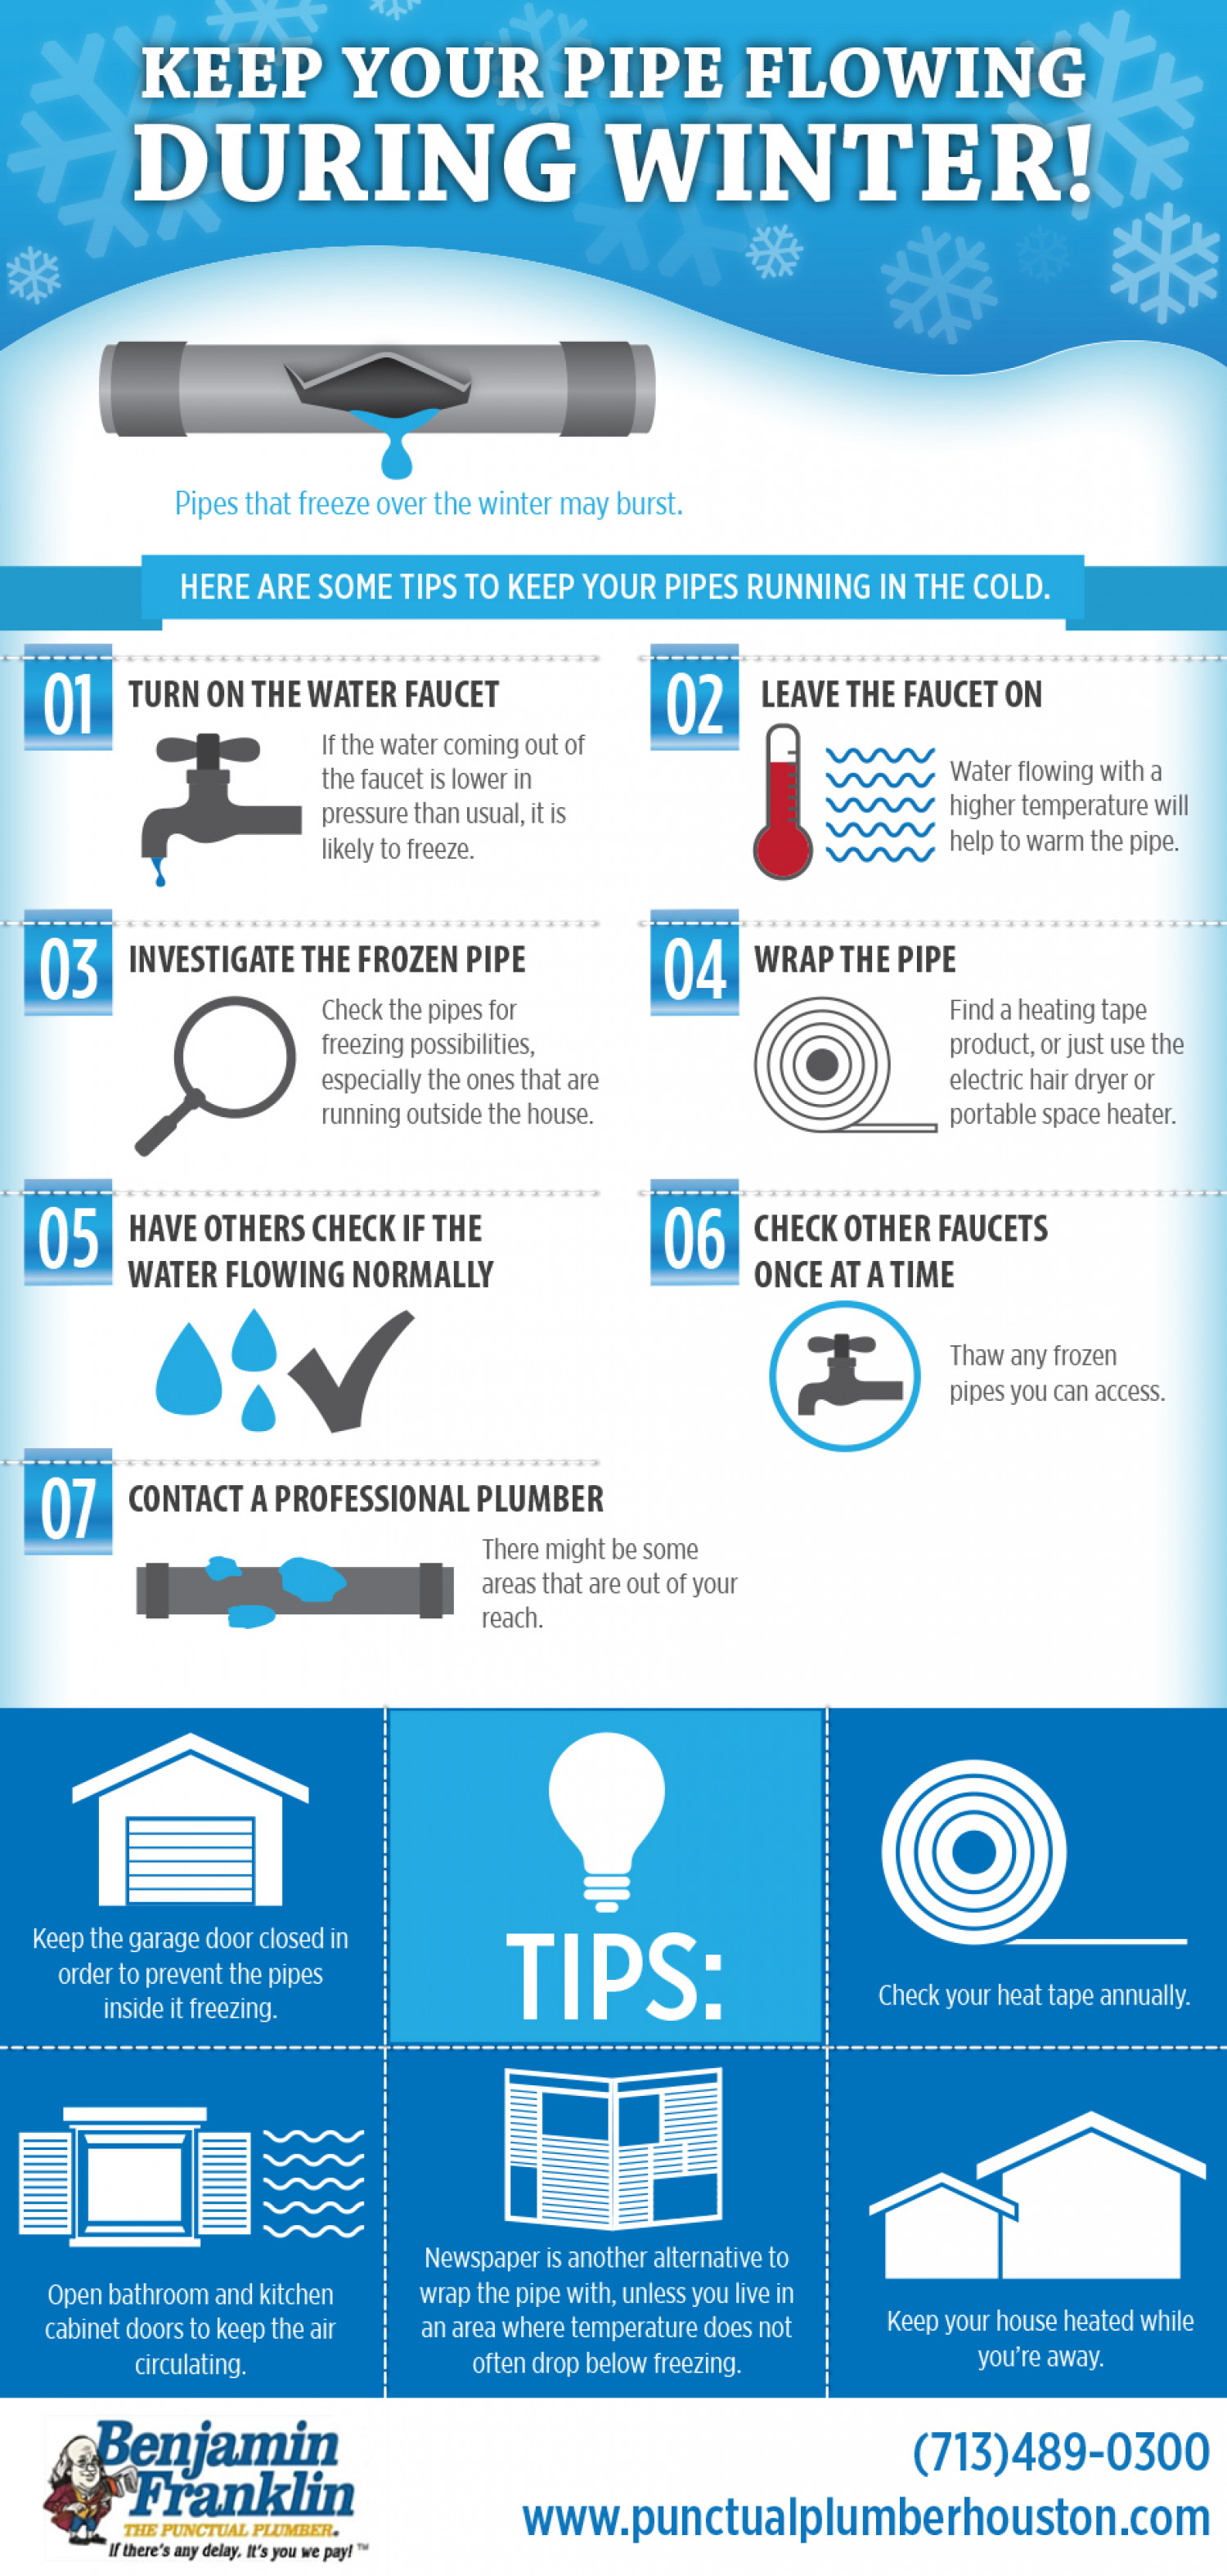 Keep Your Pipe Flowing During Winter! Infographic